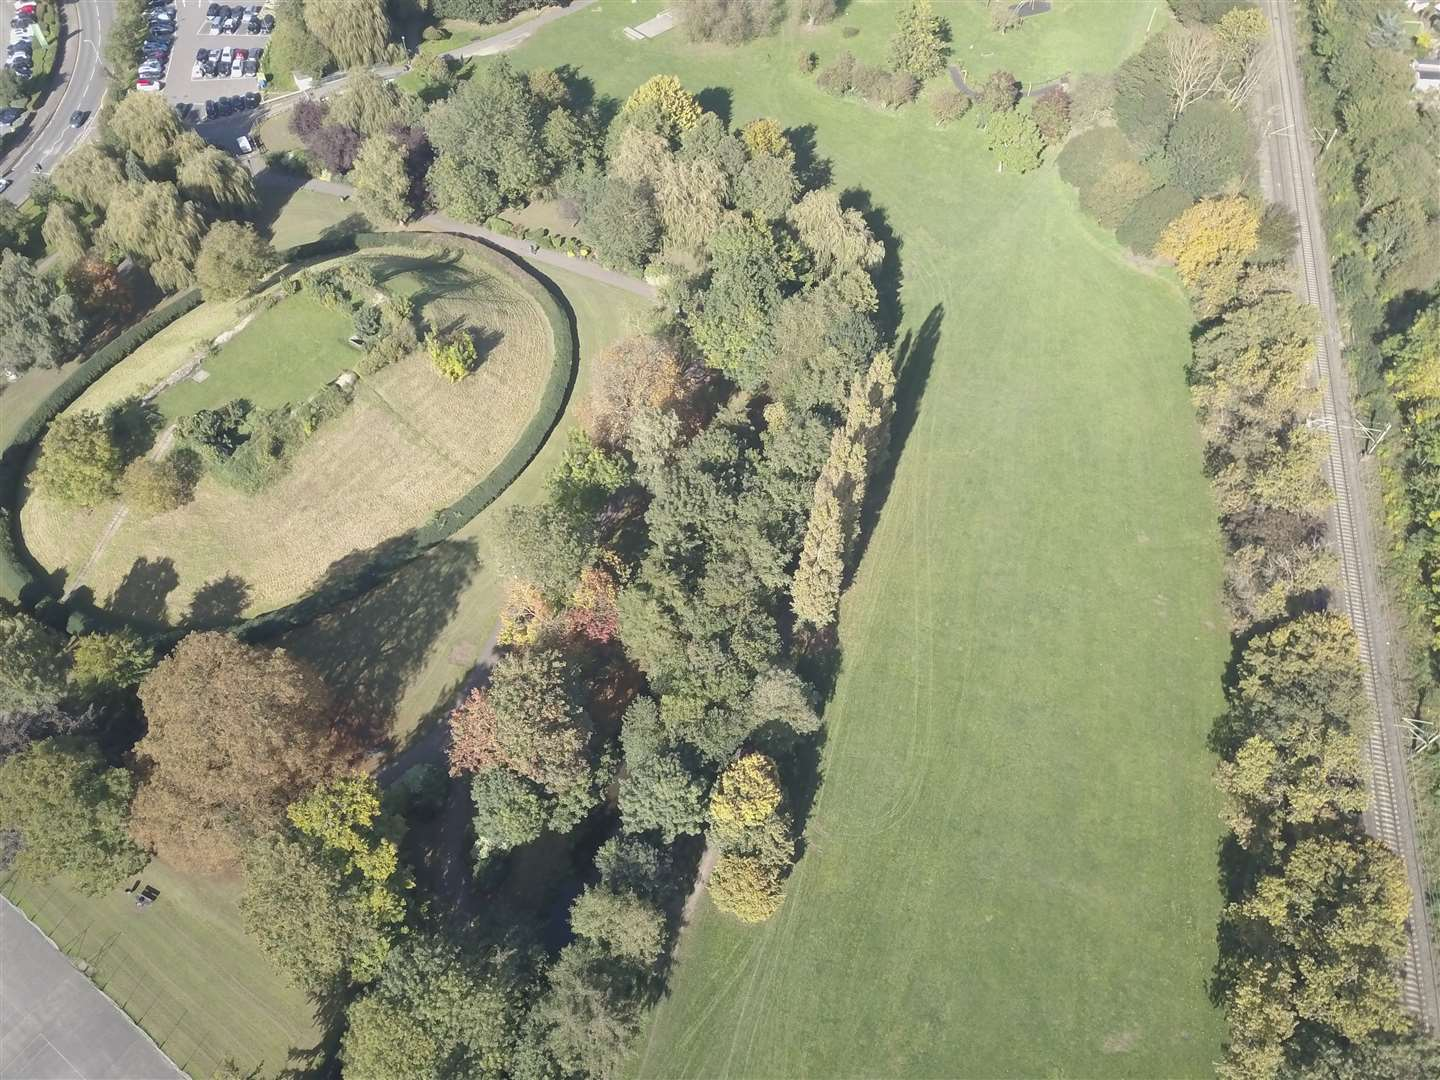 Aerial shot of Sworder's Field and Castle Mound for Castle Park project. (12697324)